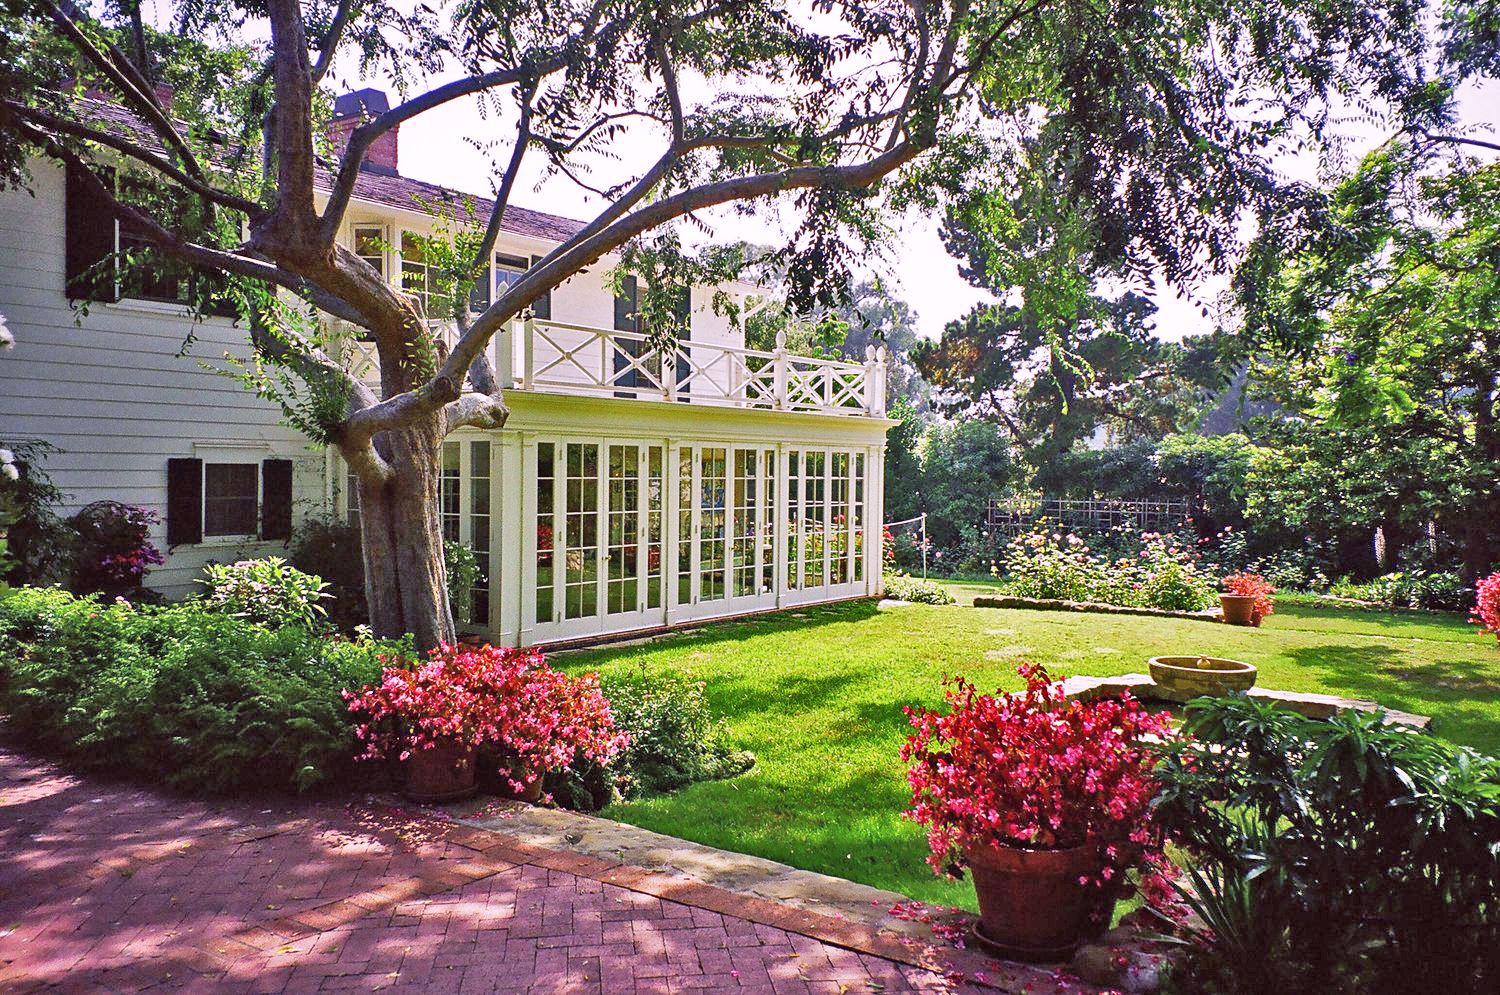 Remodel & AdditionGilson ResidenceMontecito, California - A HOME IN THE AMERICAN COLONIAL REVIVAL STYLE BUILT CIRCA 1930